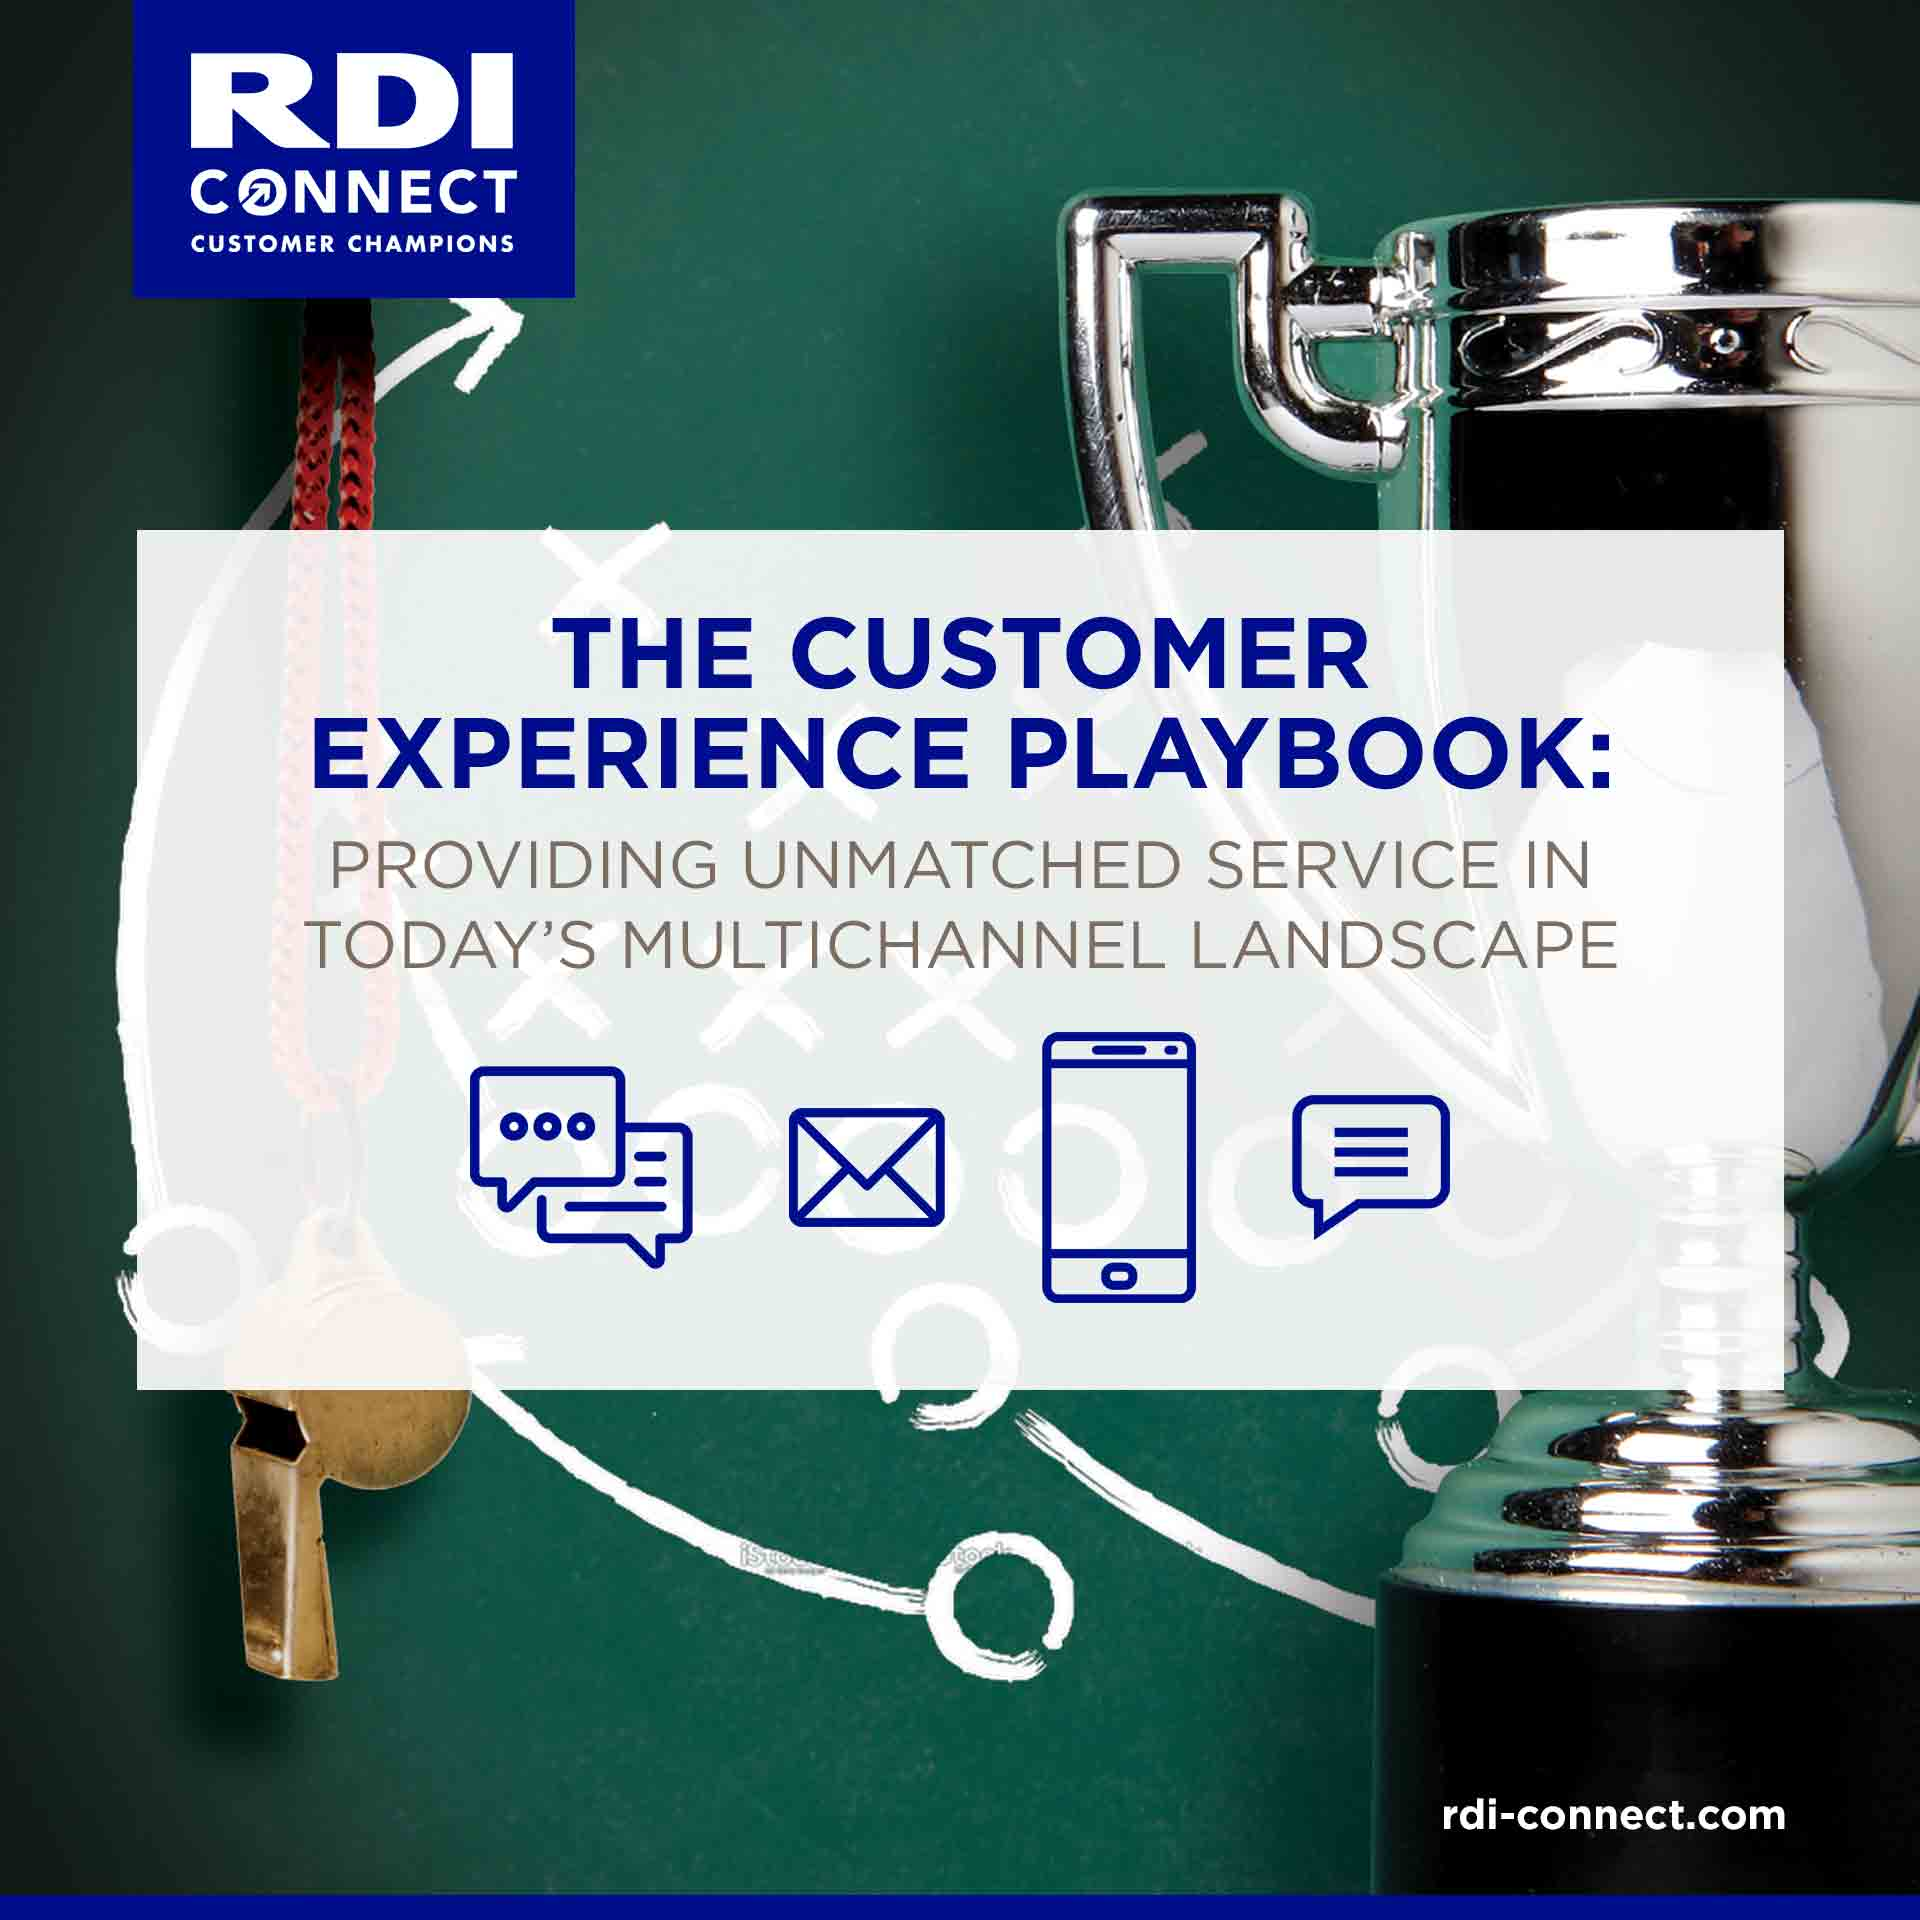 The Customer Experience Playbook: Providing Unmatched Service in Todays Multichannel Landscape - RDI Connect White Paper